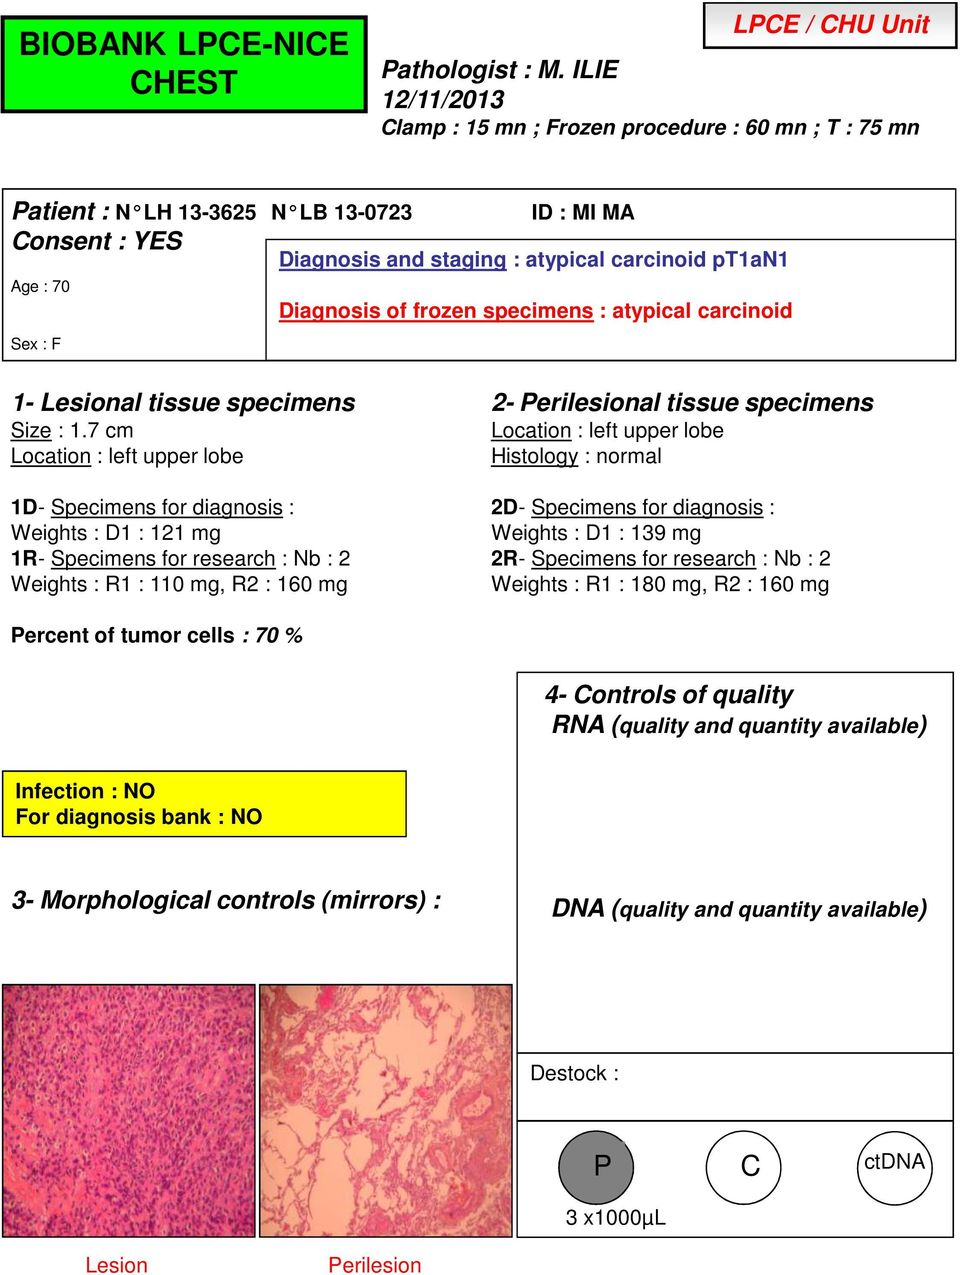 atypical carcinoid pt1an1 Diagnosis of frozen specimens : atypical carcinoid Size : 1.